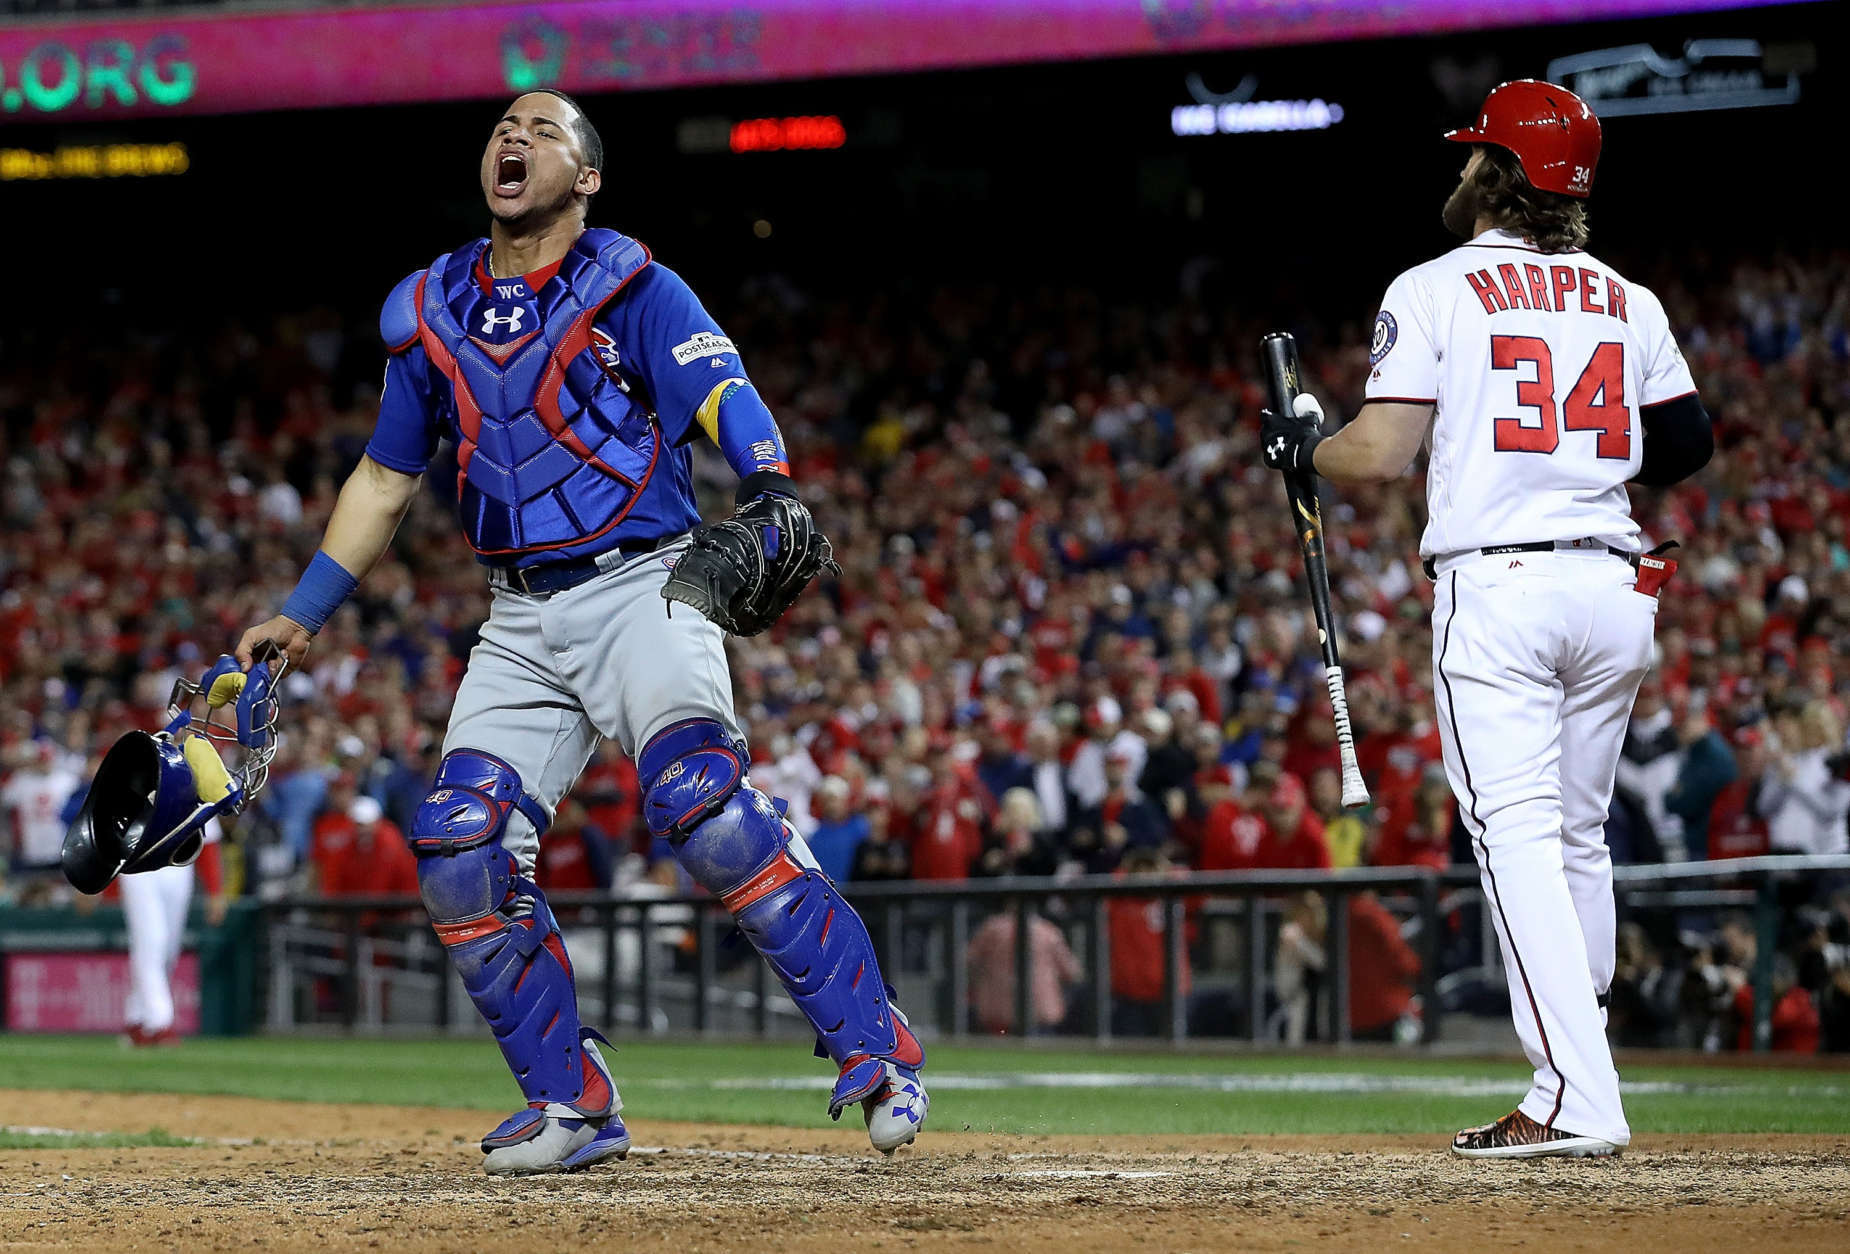 WASHINGTON, DC - OCTOBER 13:  Willson Contreras #40 of the Chicago Cubs celebrates next to Bryce Harper #34 of the Washington Nationals after Harper struck out to end Game 5 of the National League Divisional Series at Nationals Park on October 13, 2017 in Washington, DC. The Cubs won the game 9-8 and will advance to the National League Championship Series against the Los Angeles Dodgers.  (Photo by Win McNamee/Getty Images)